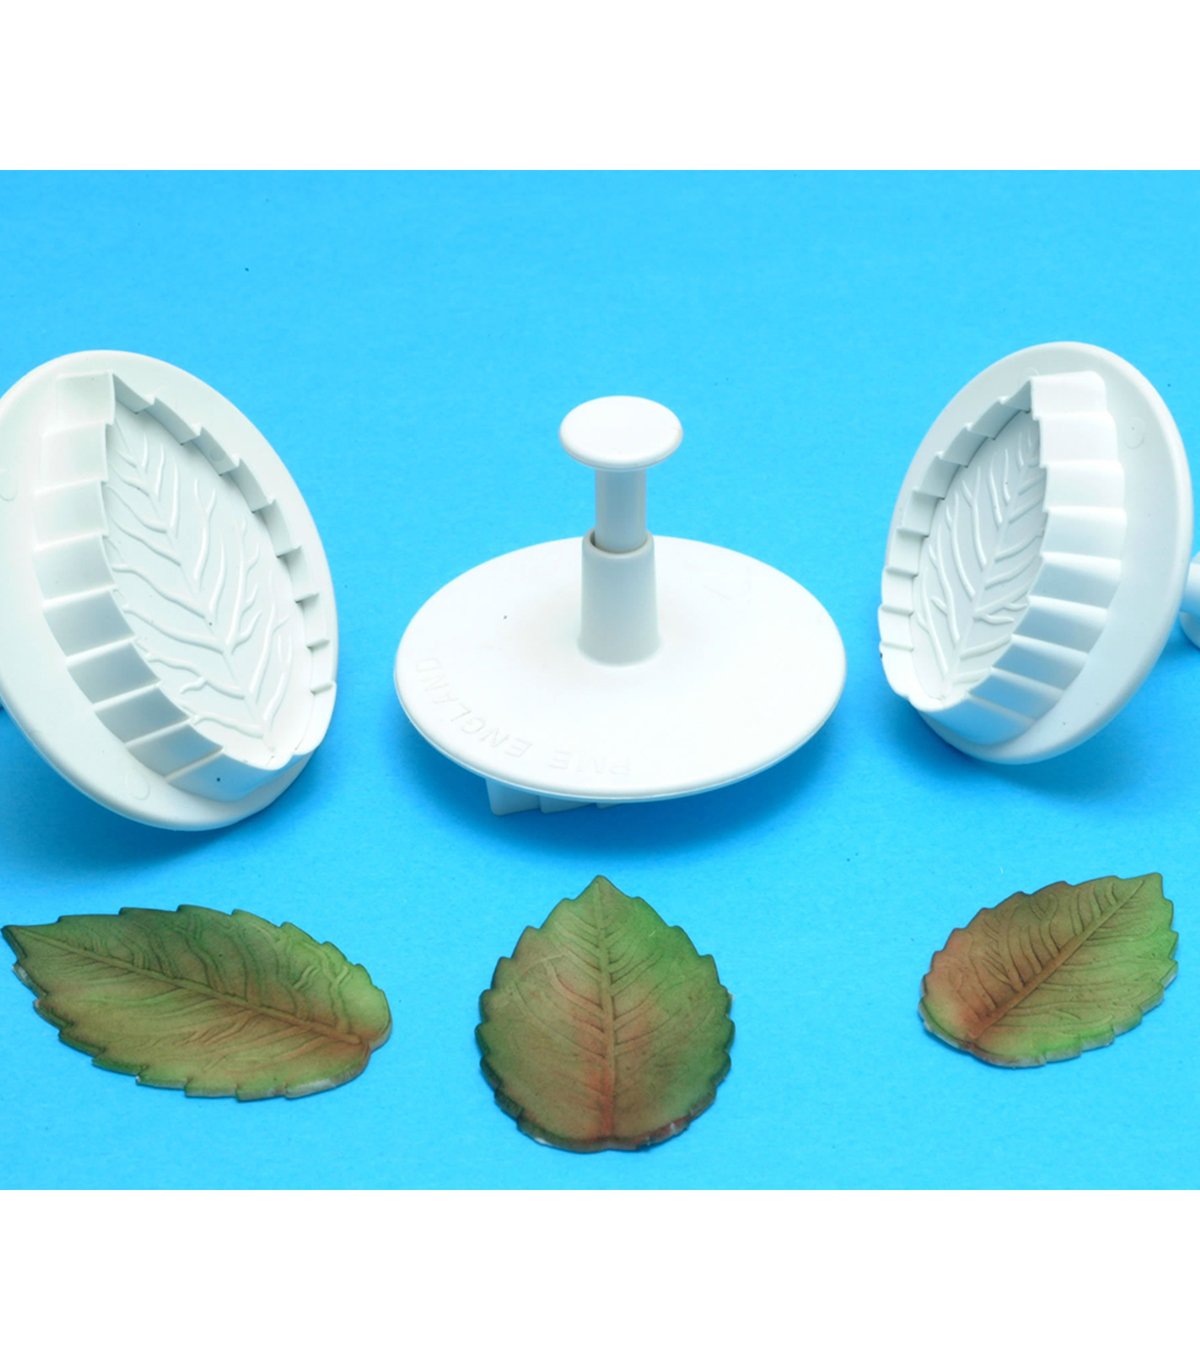 PME 3 Pack Plunger Cutters-Veined Rose Leaf